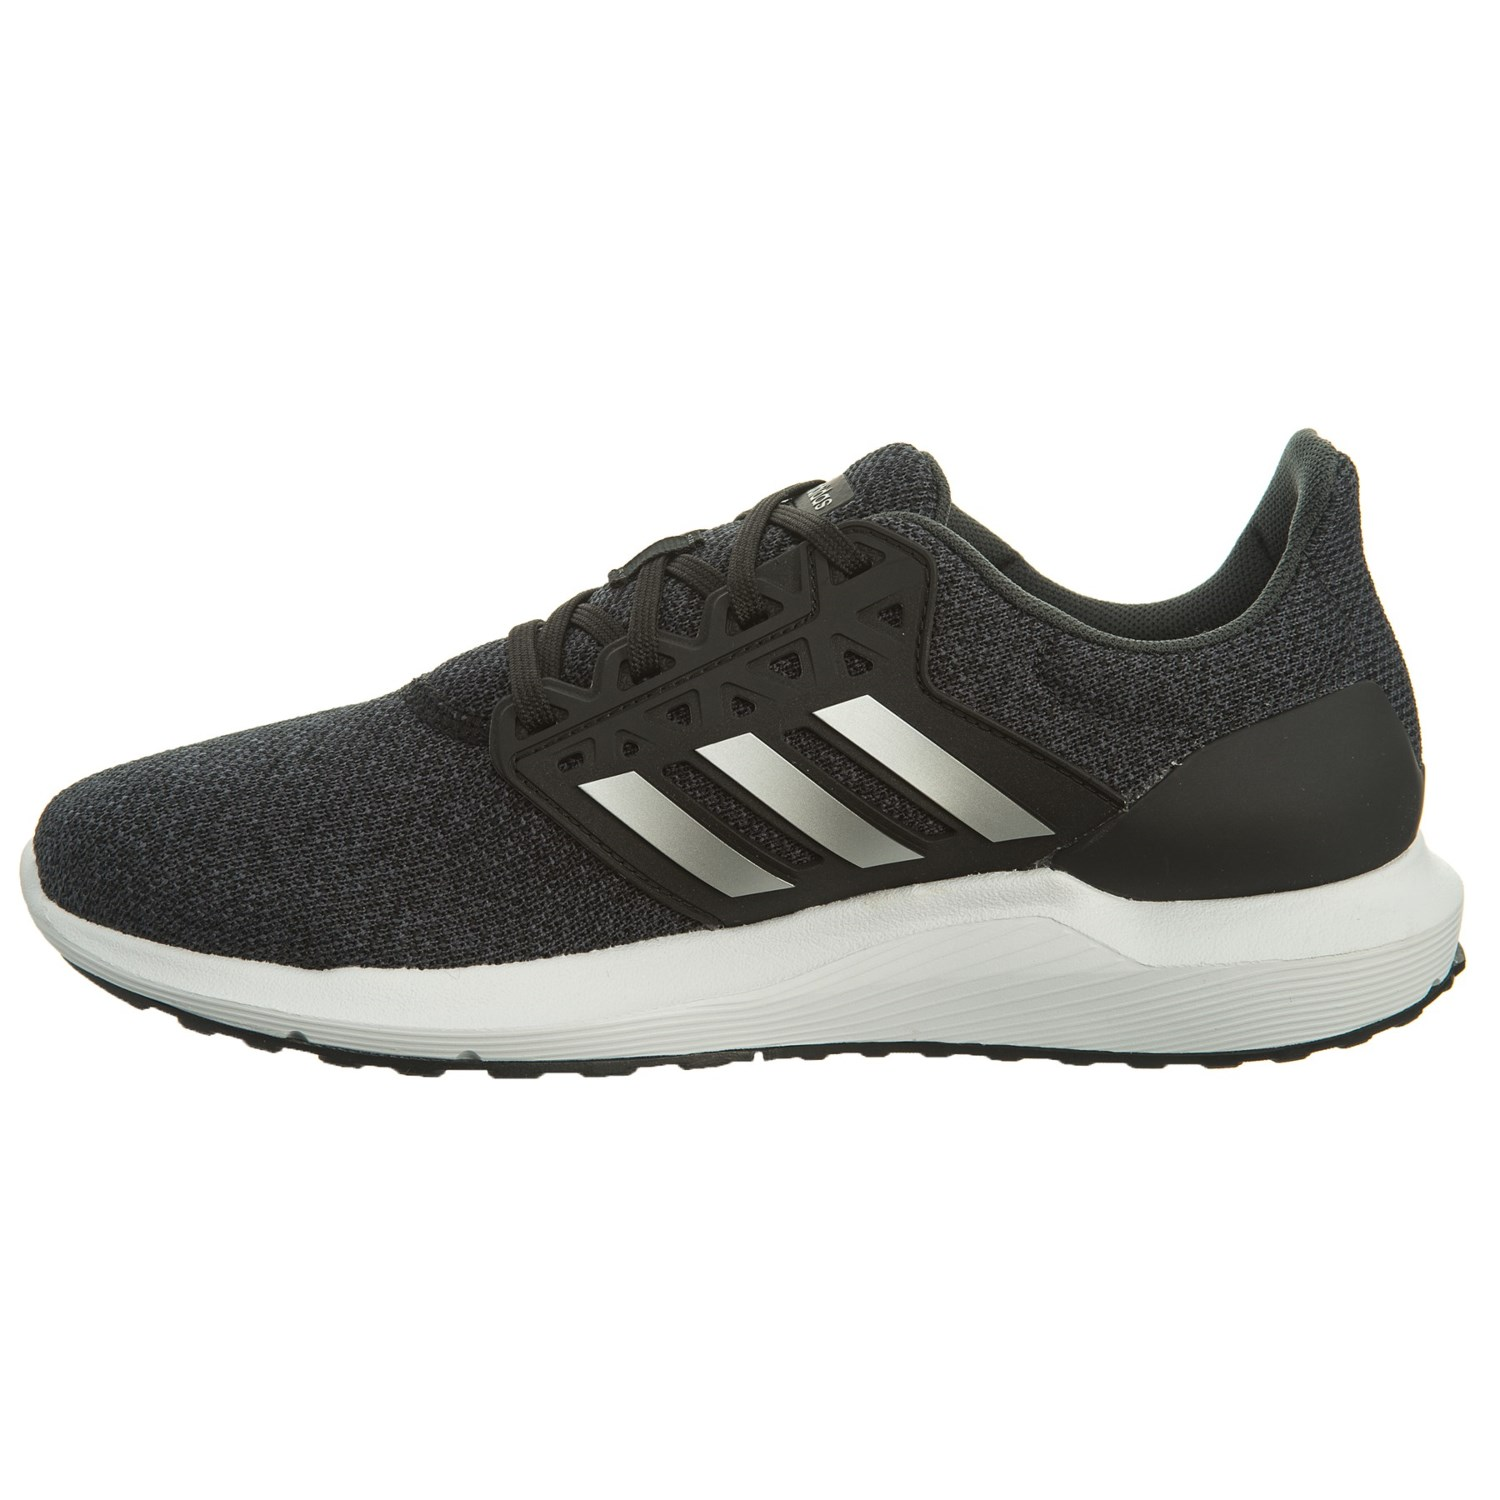 6f268d88 adidas Solyx Training Shoes (For Women) - Save 28%